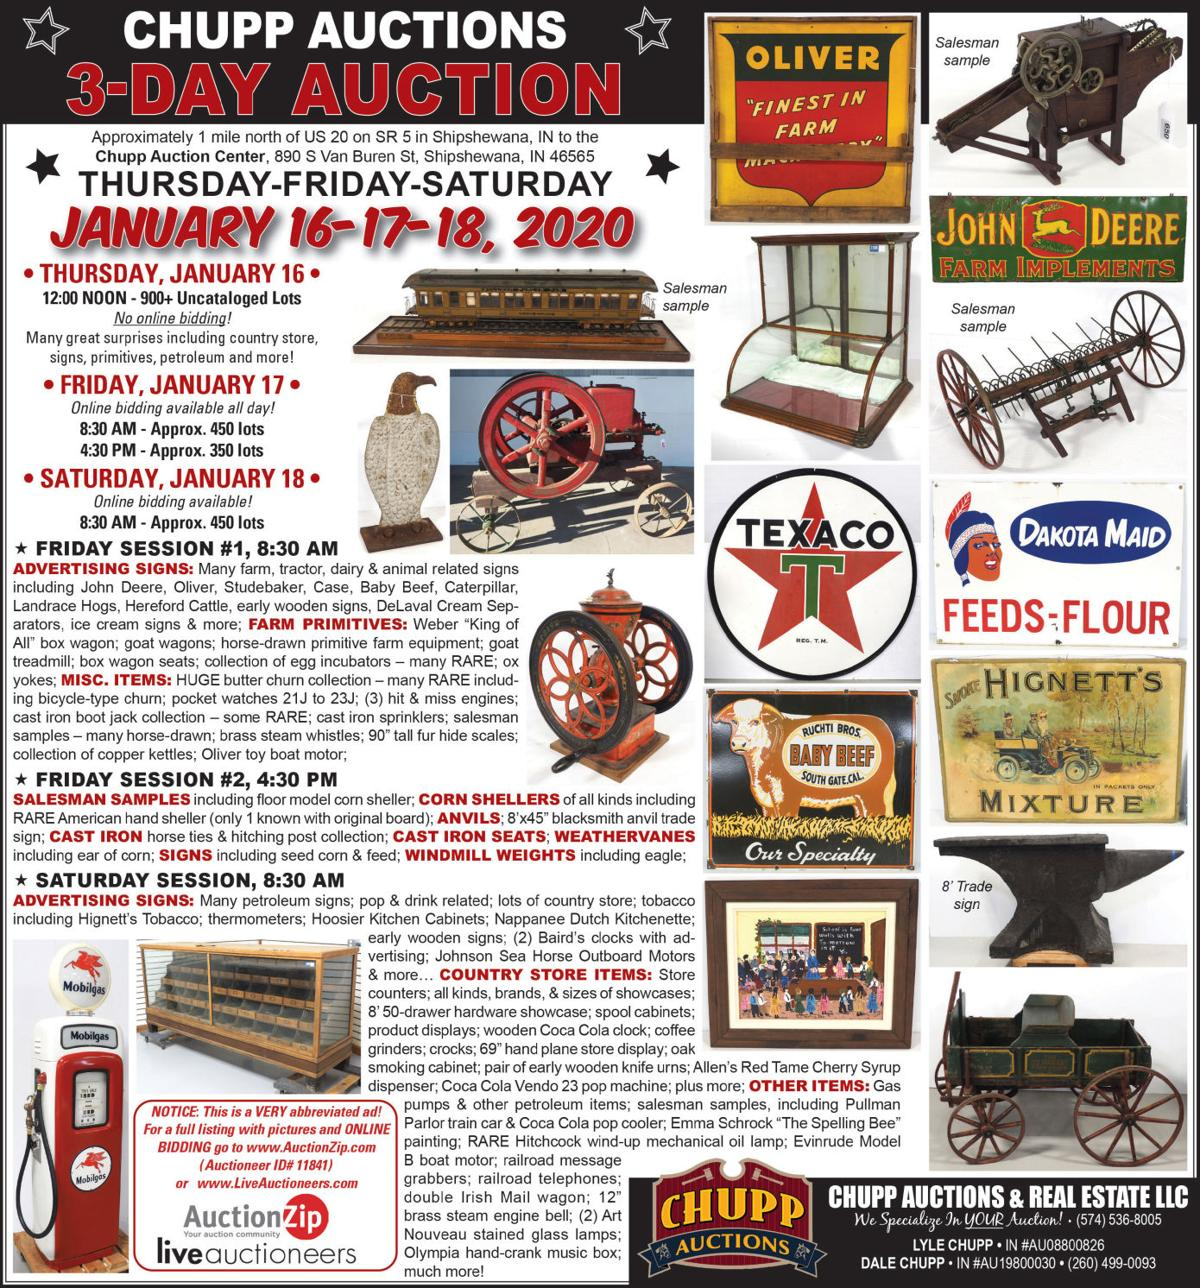 Advertising signs, farm primitives, misc. items, Cast iron, corn shellers, anvils, Signs, country store items.